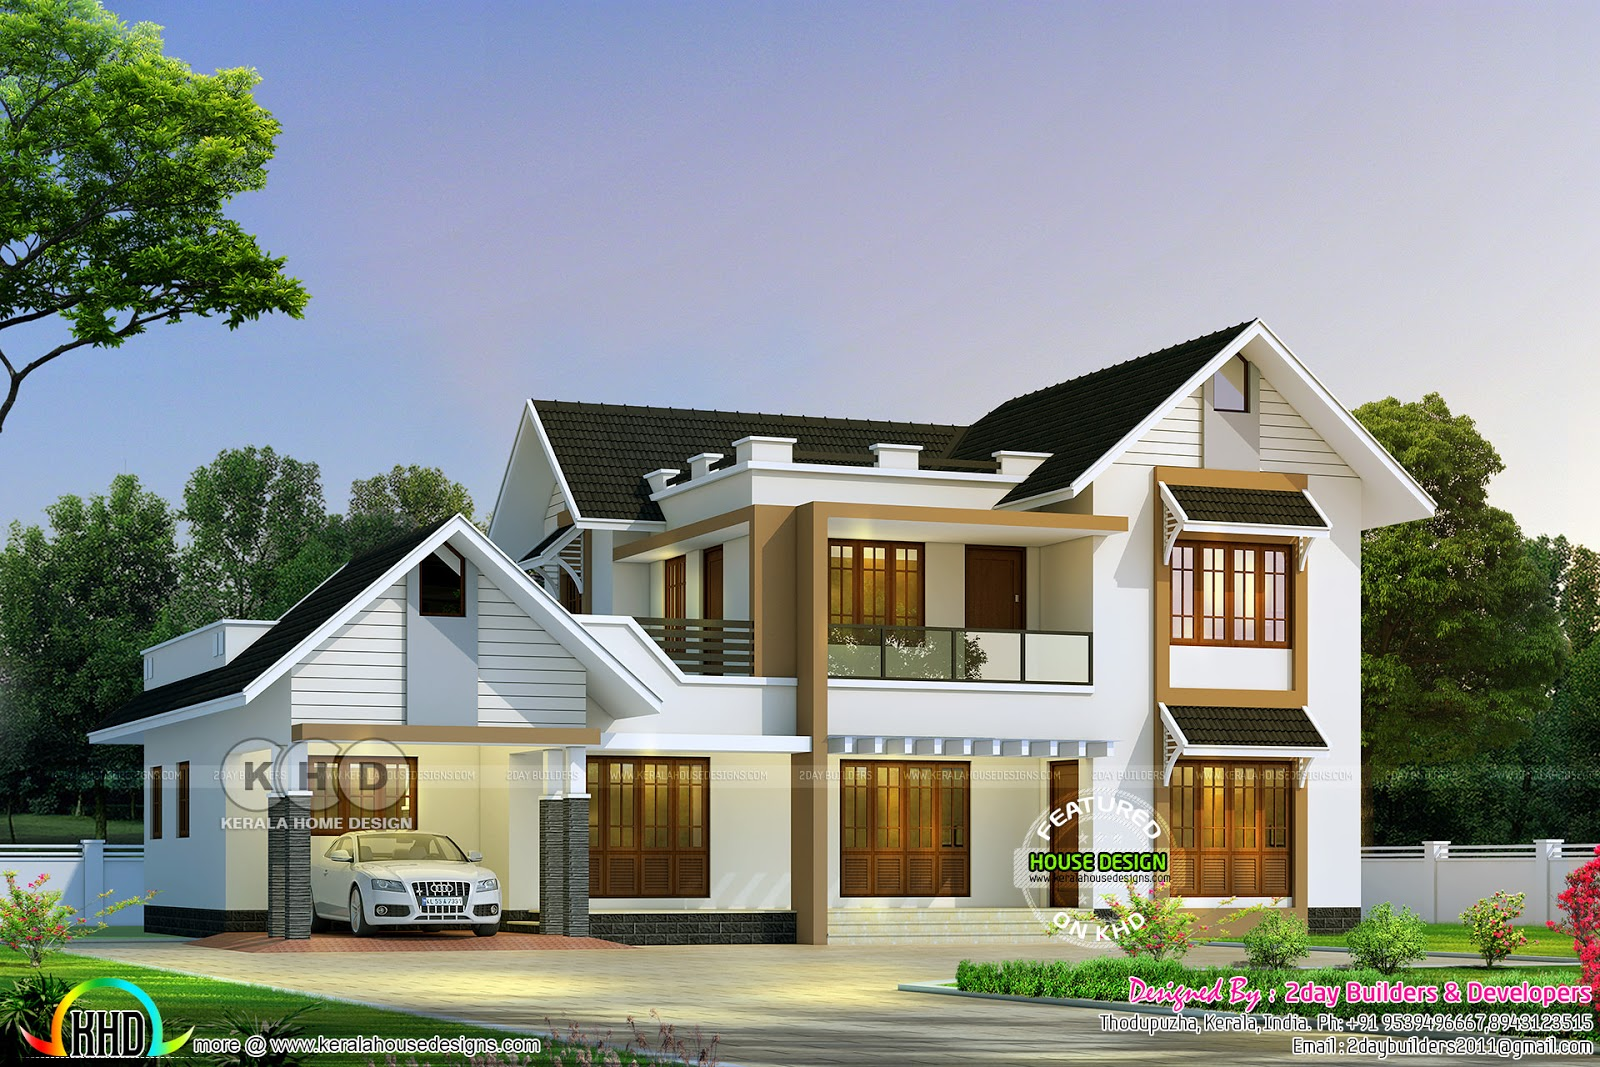 2017 kerala home design and floor plans for House plans in kerala with 2 bedrooms